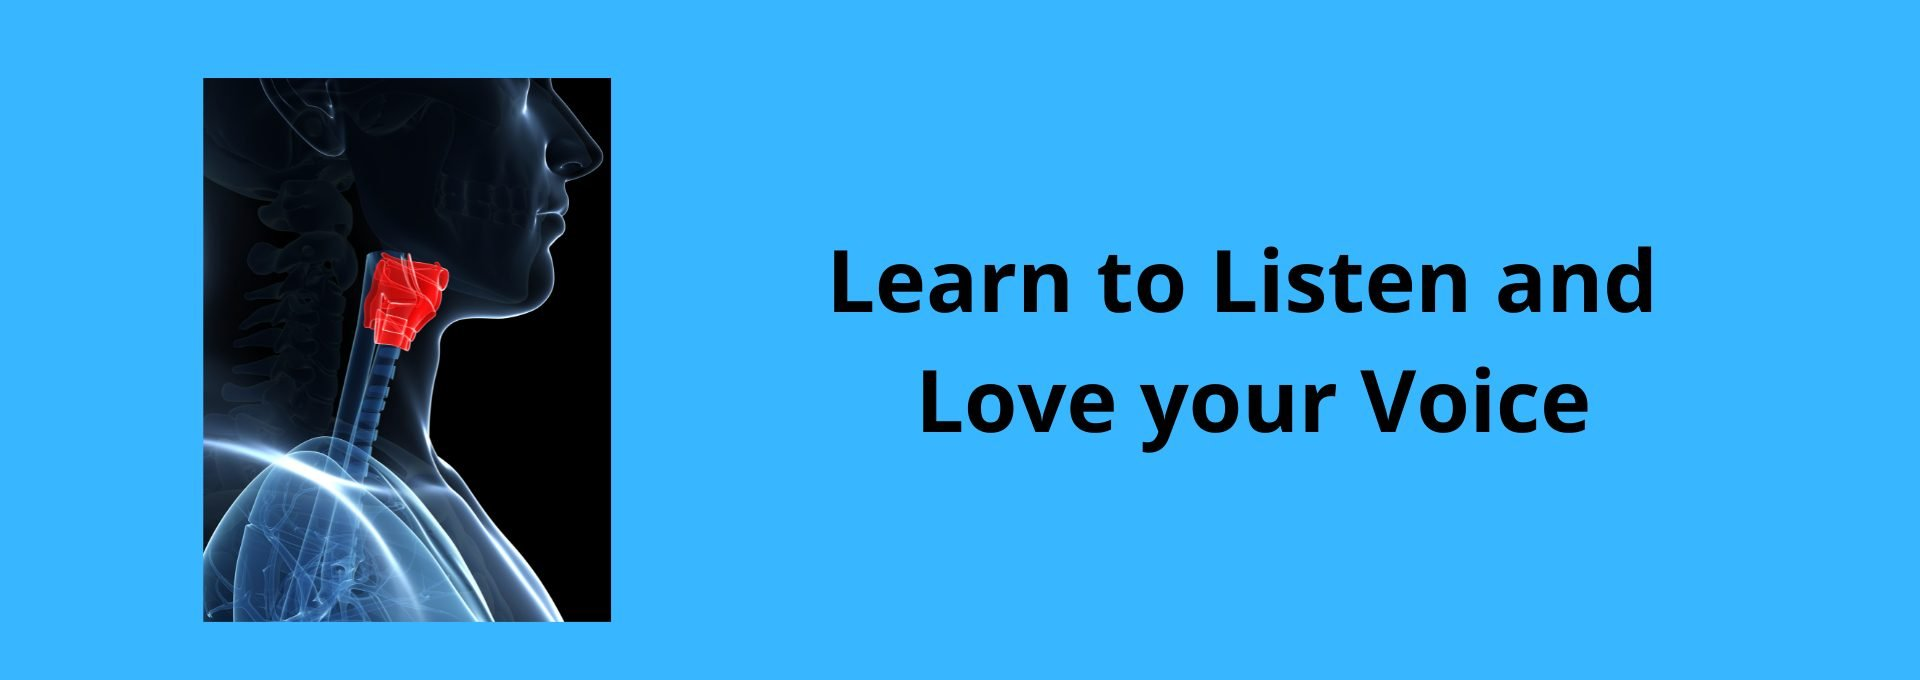 Learn to listen and love your voice banner